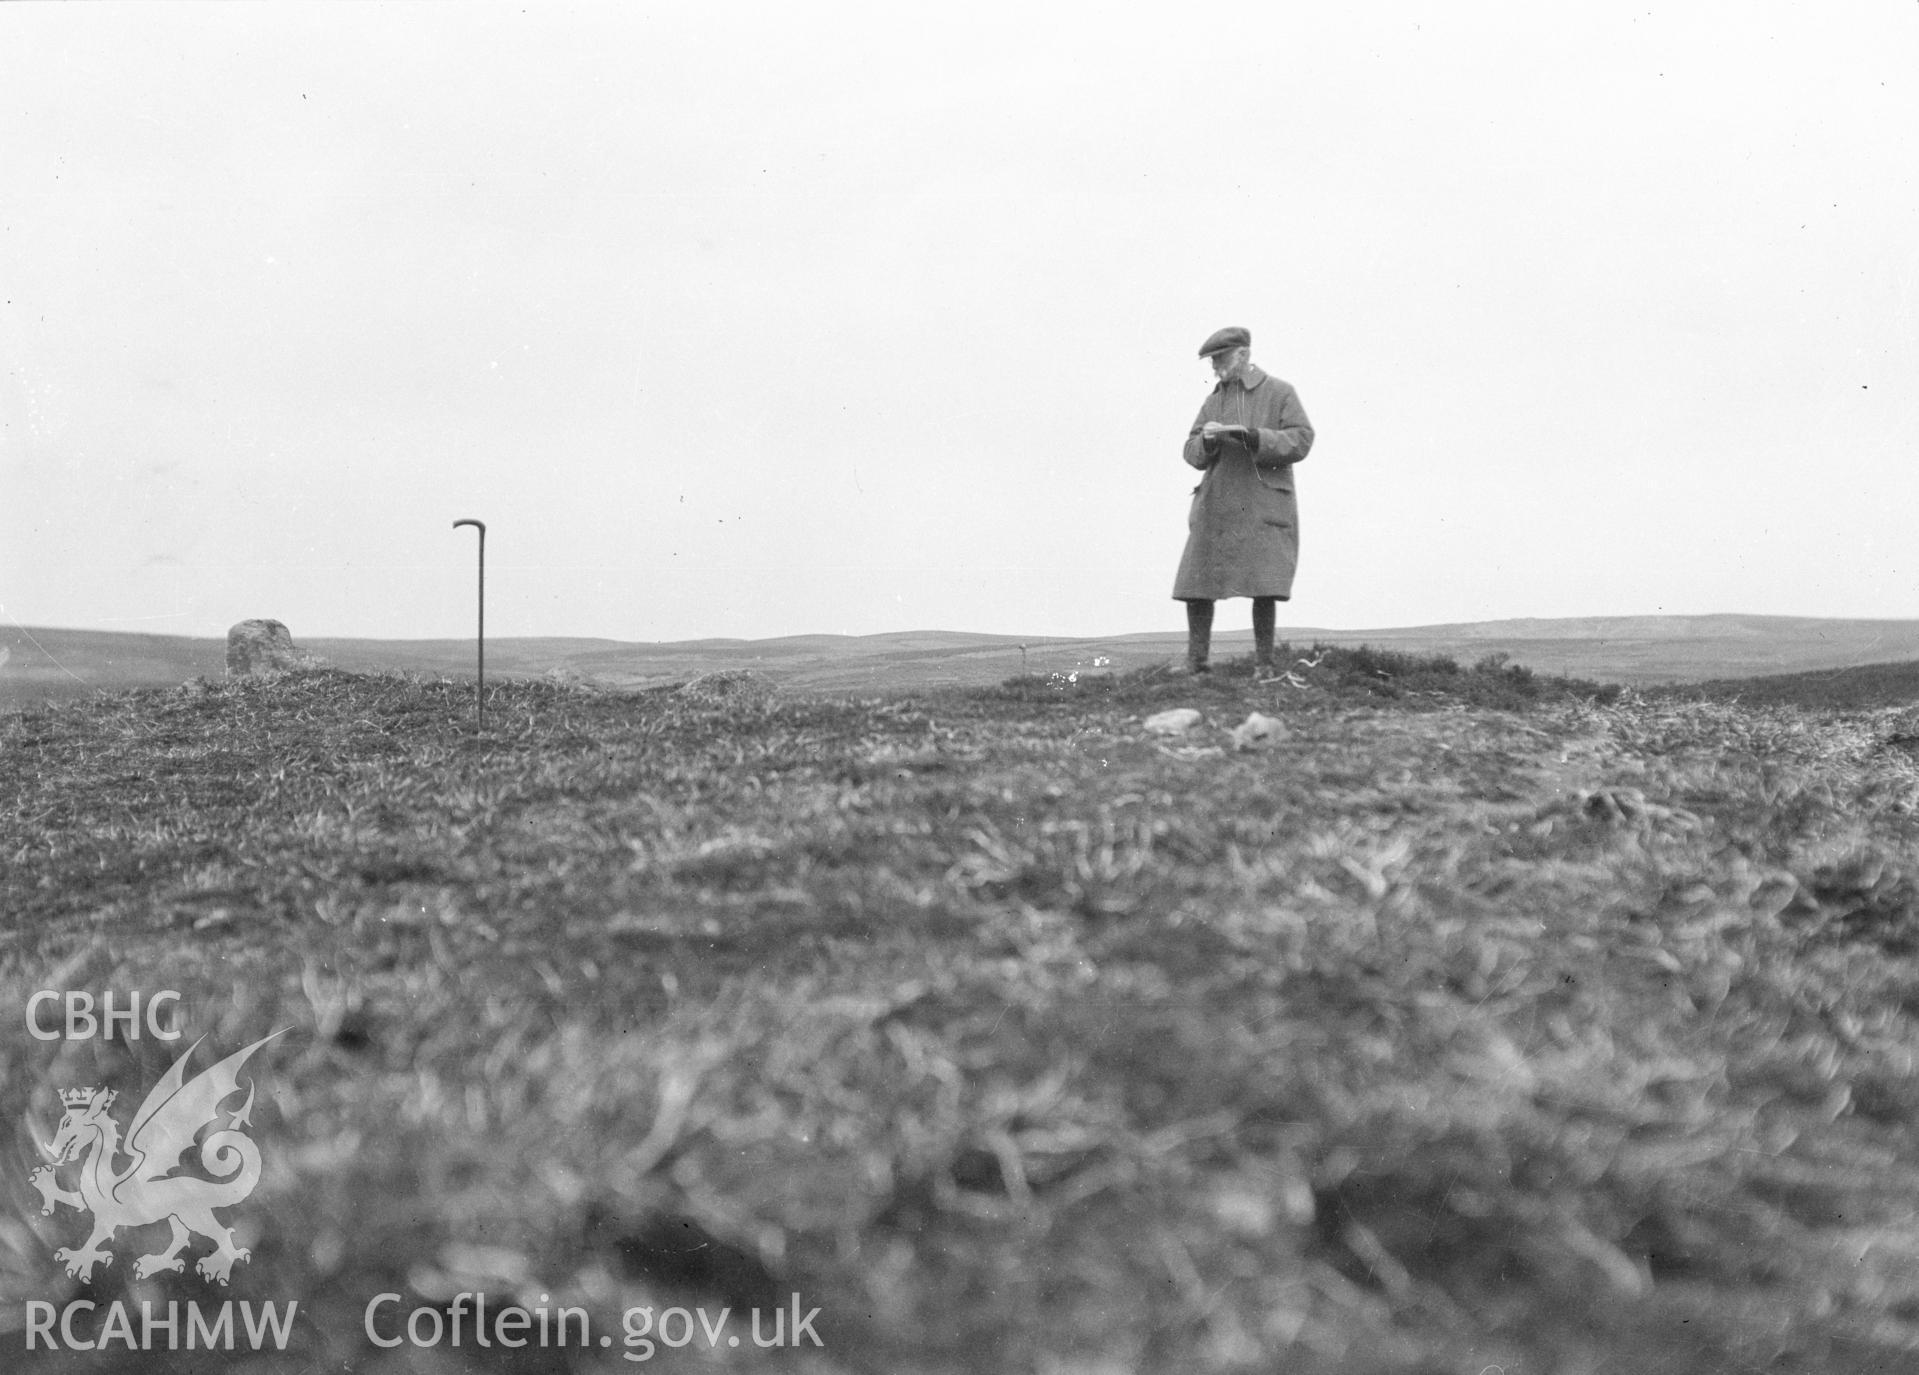 Digital copy of a nitrate negative showing Bryn Beddau round barrows. Back of negative copy dates the photograph to 'July 1930.' From the Cadw Monuments in Care Collection.